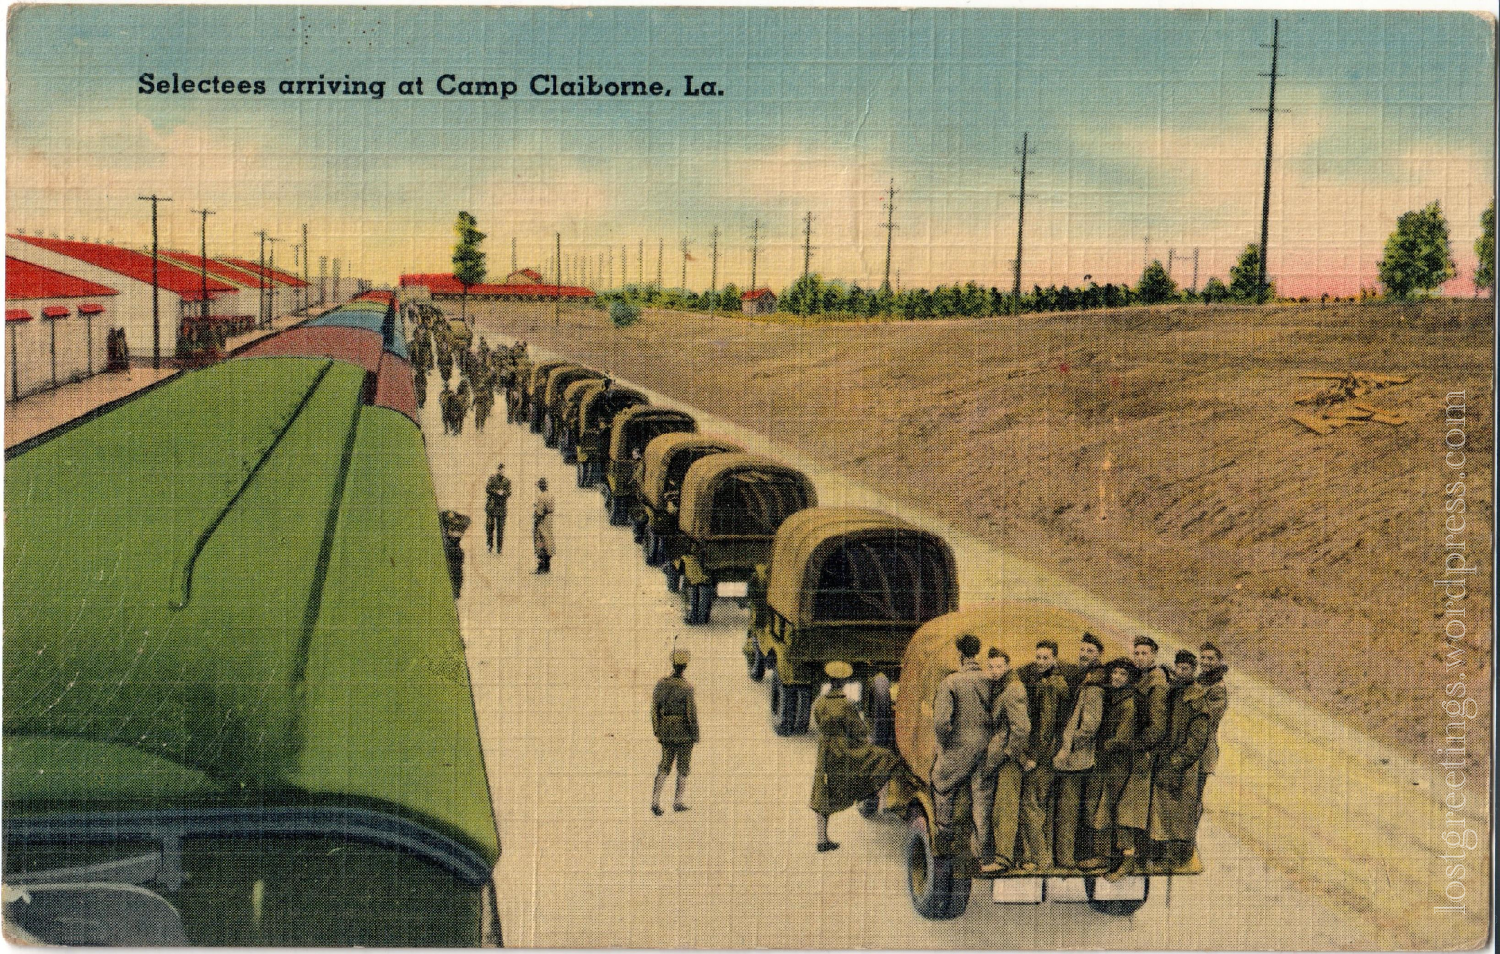 Vintage Linen Postcard, World War II - Camp Claiborne, Louisiana